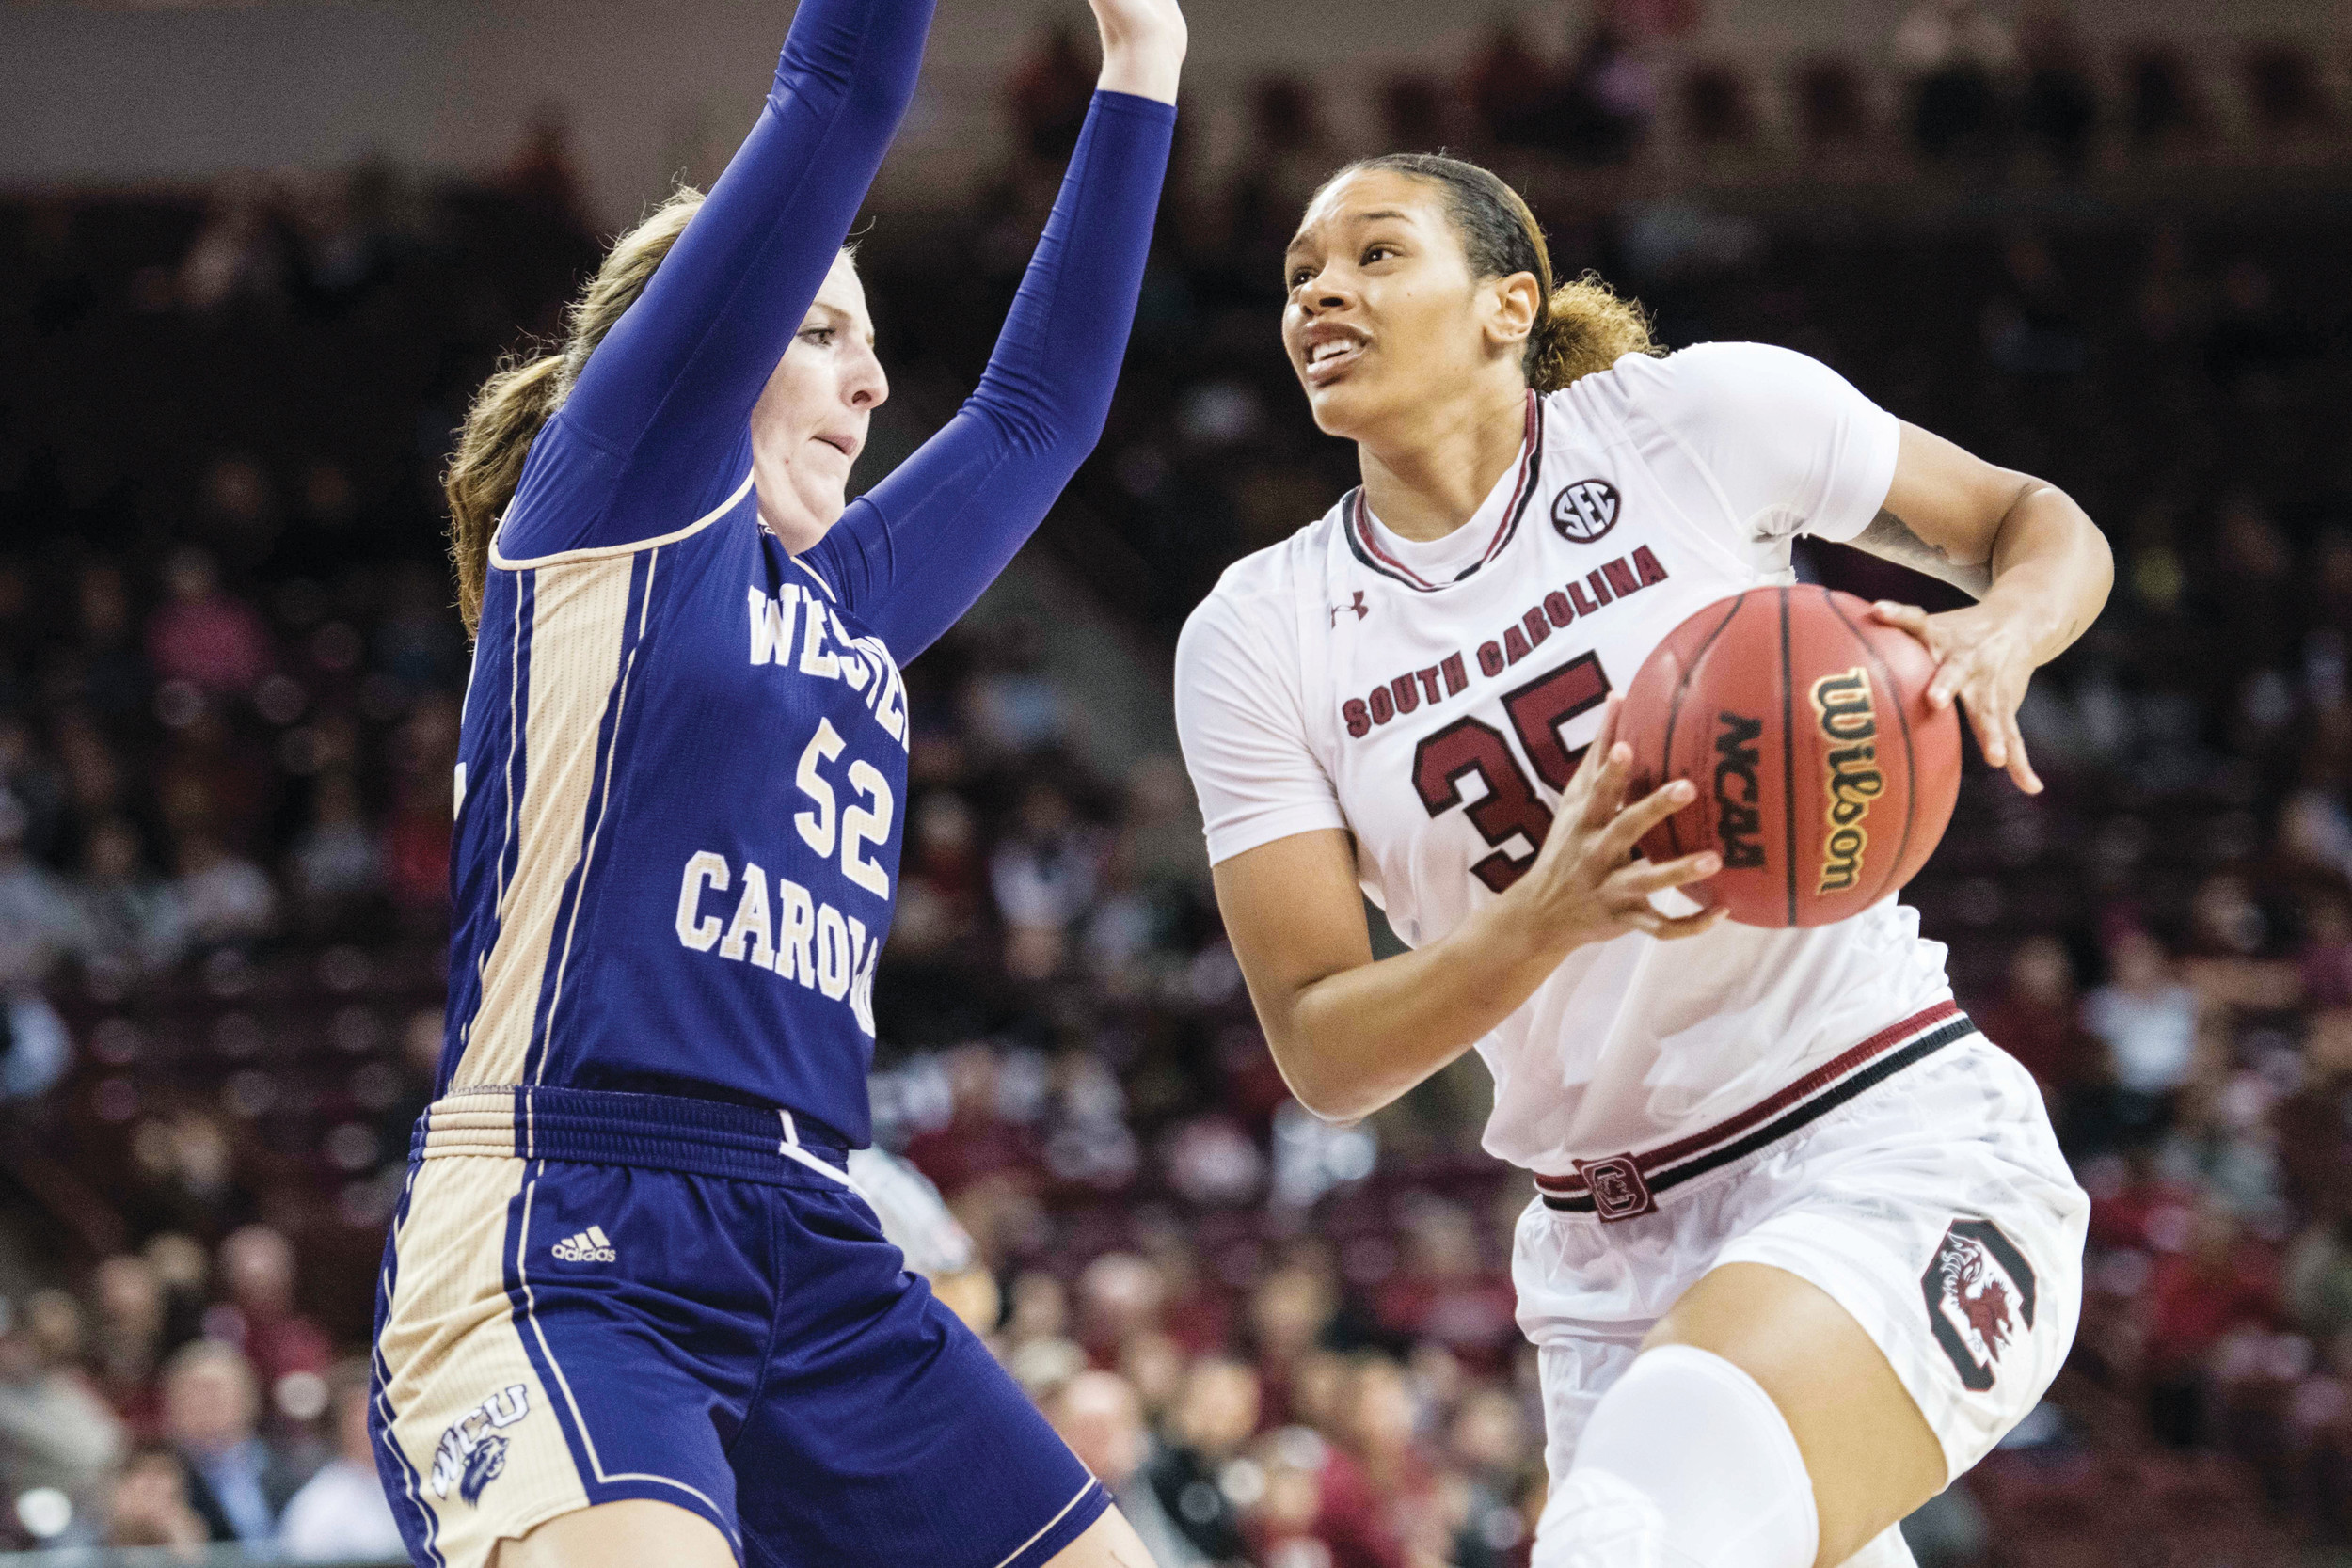 South Carolina forward Alexis Jennings (35) drives to the basket against Western Carolina forward Emily Hatfield (52) during the first half of the Gamecocks' 101-43 victory on Thursday in Columbia.